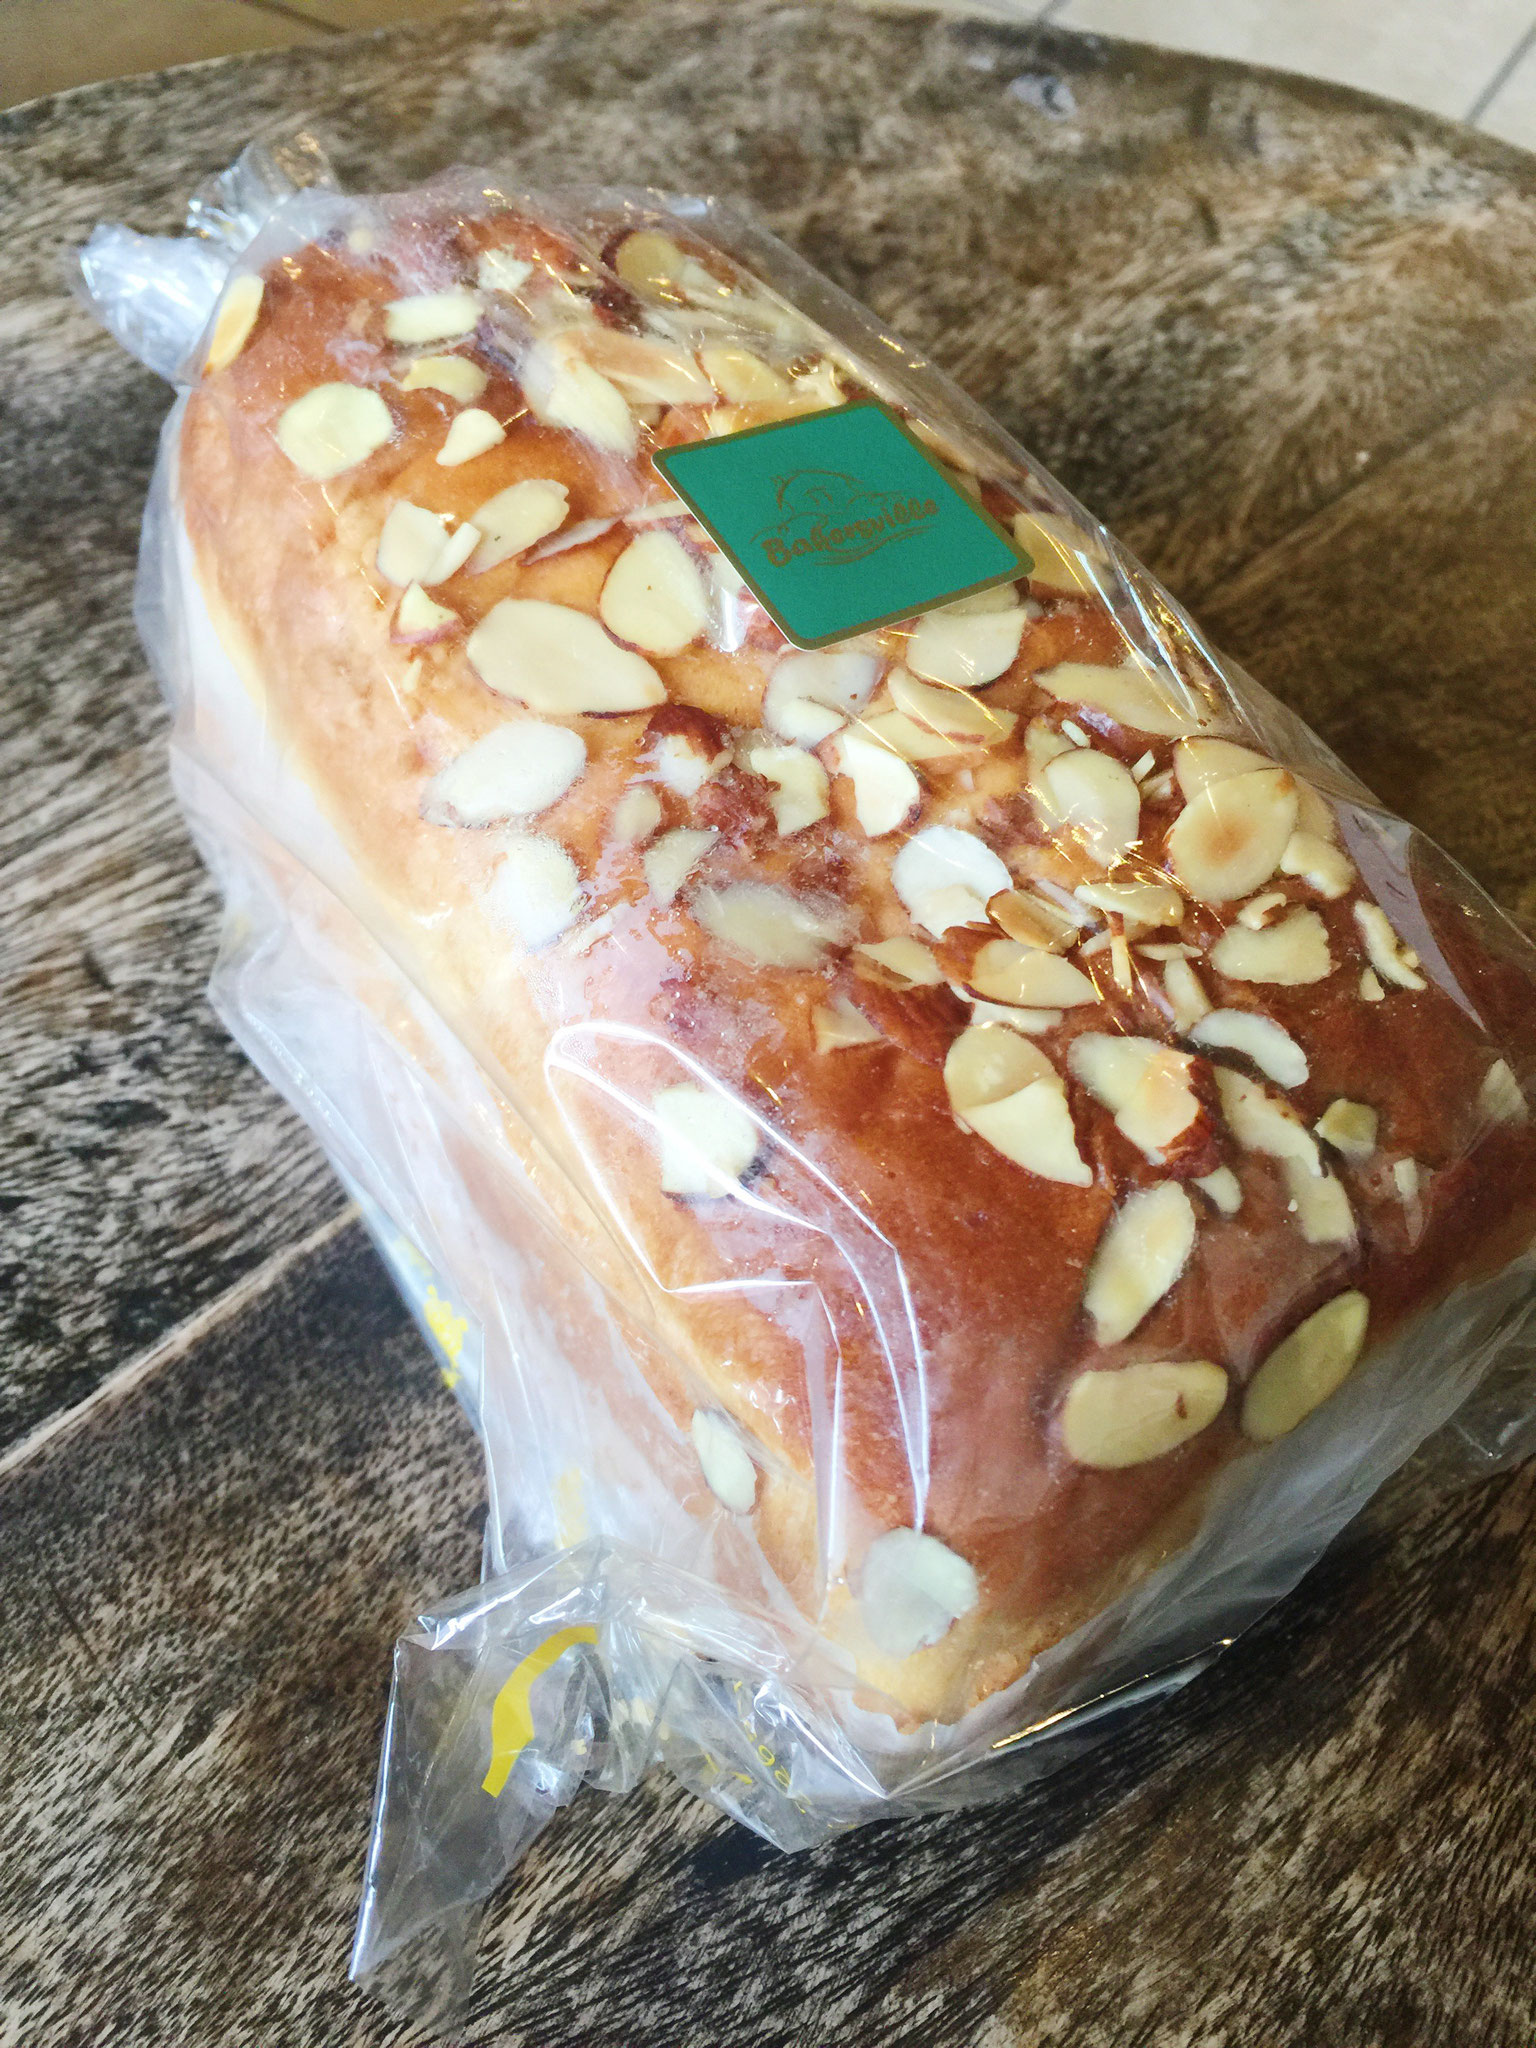 Chestnut Bread - $4.75